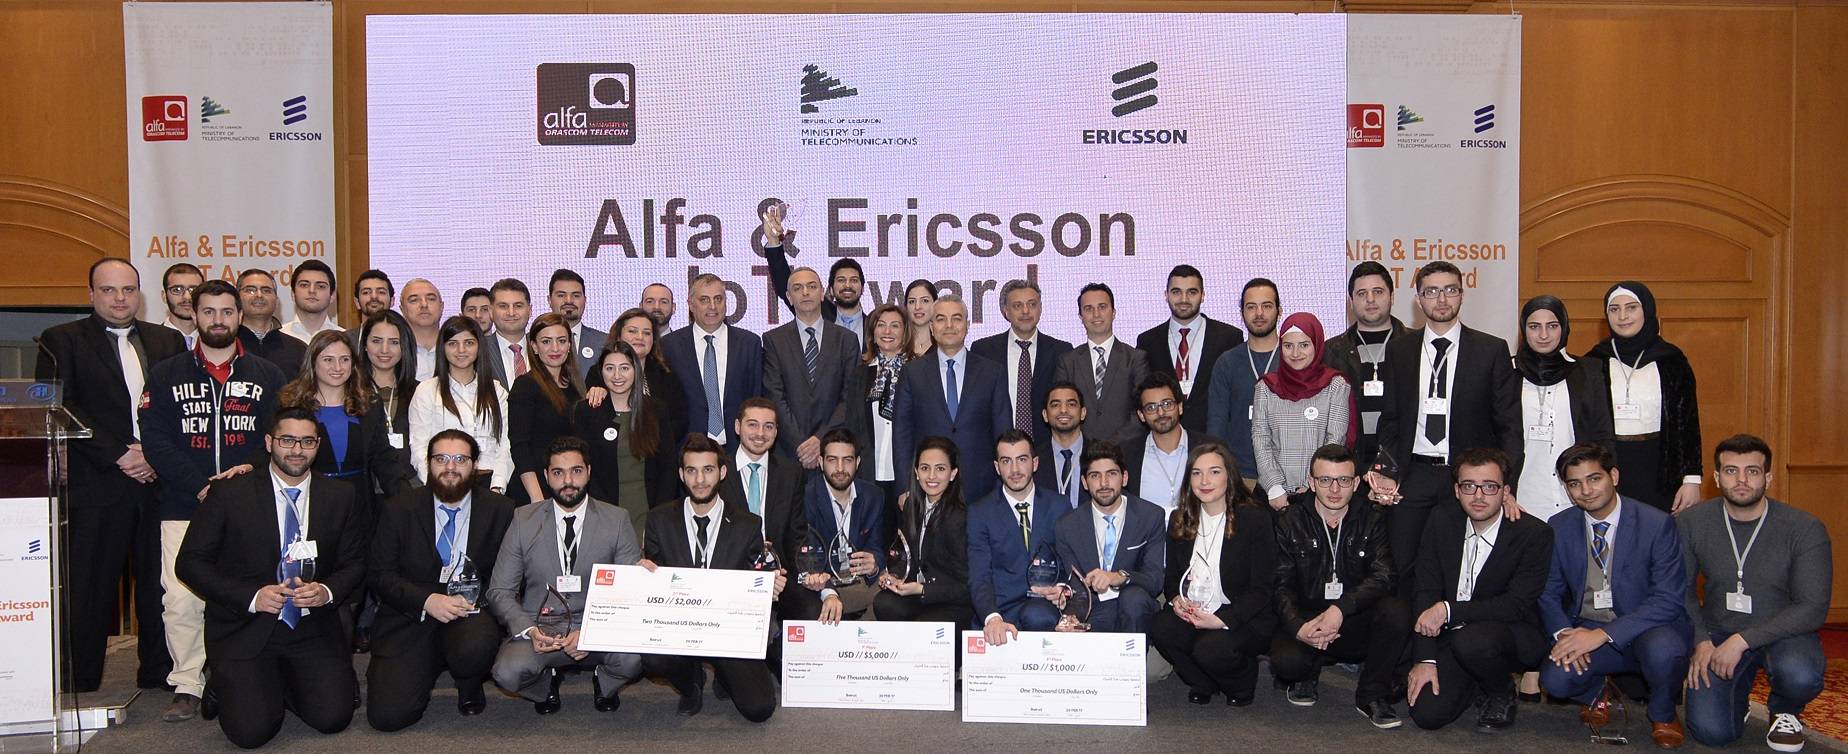 Under the auspices of His Excellency the Minister of Telecommunications Jamal Jarrah…Winners of Alfa & Ericsson IoT Award announced after Tough Competition